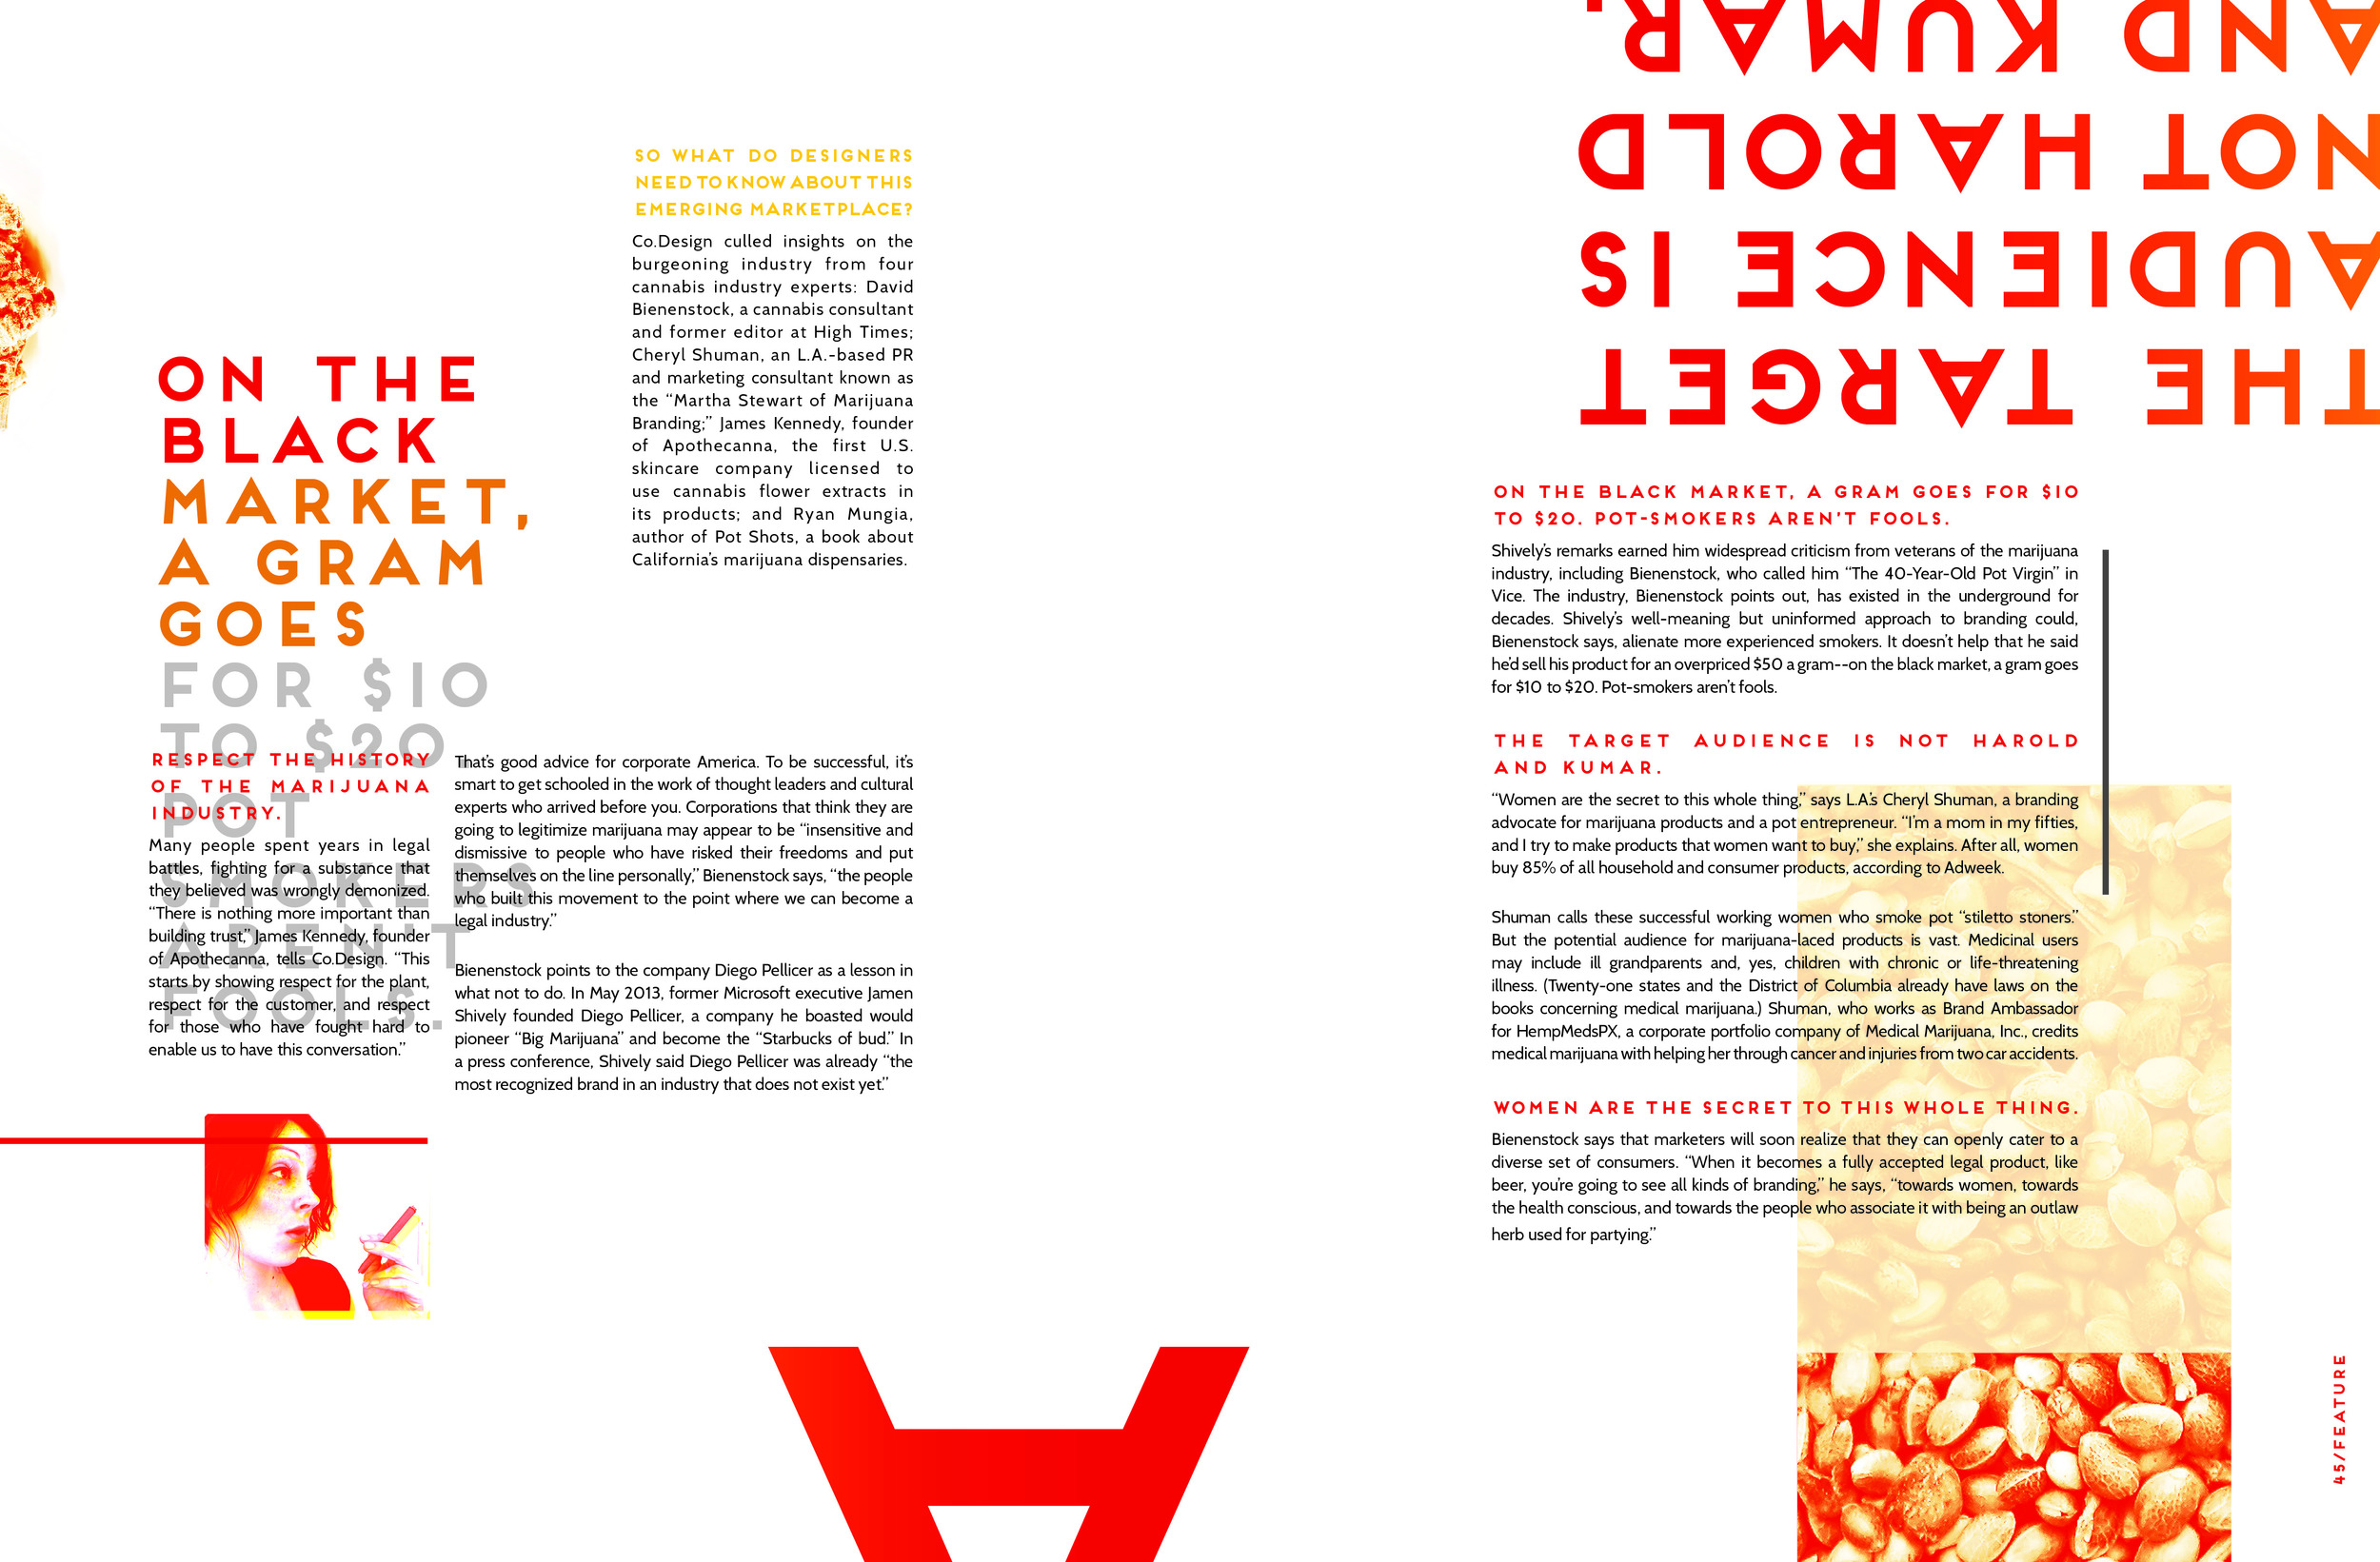 magazine_cannpack_layout_spreads5.jpg